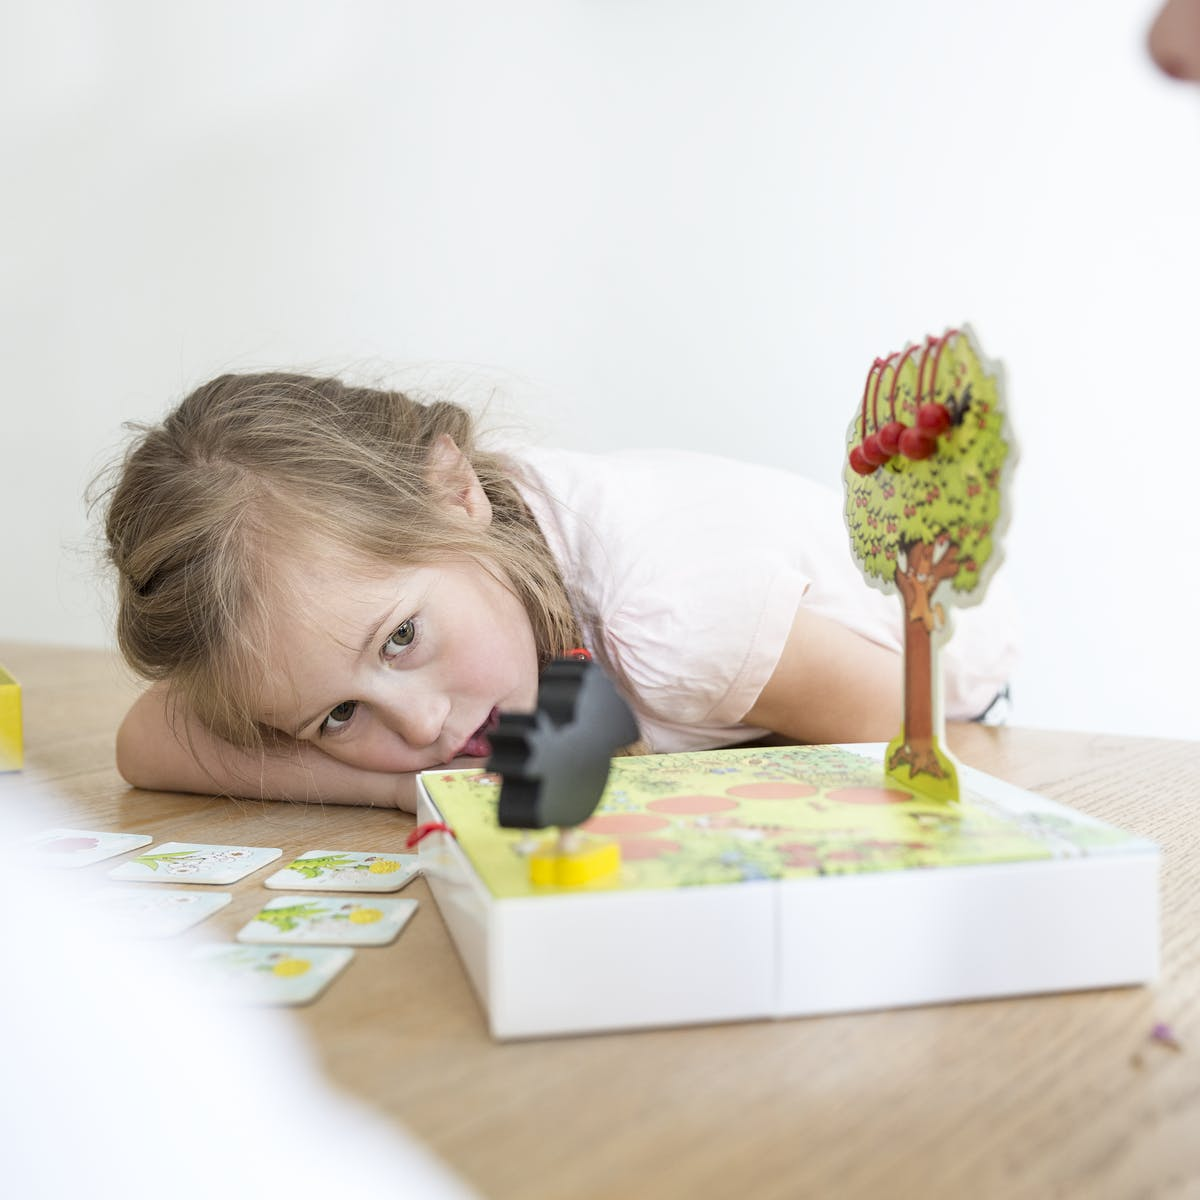 Understanding child development: from synapse to society